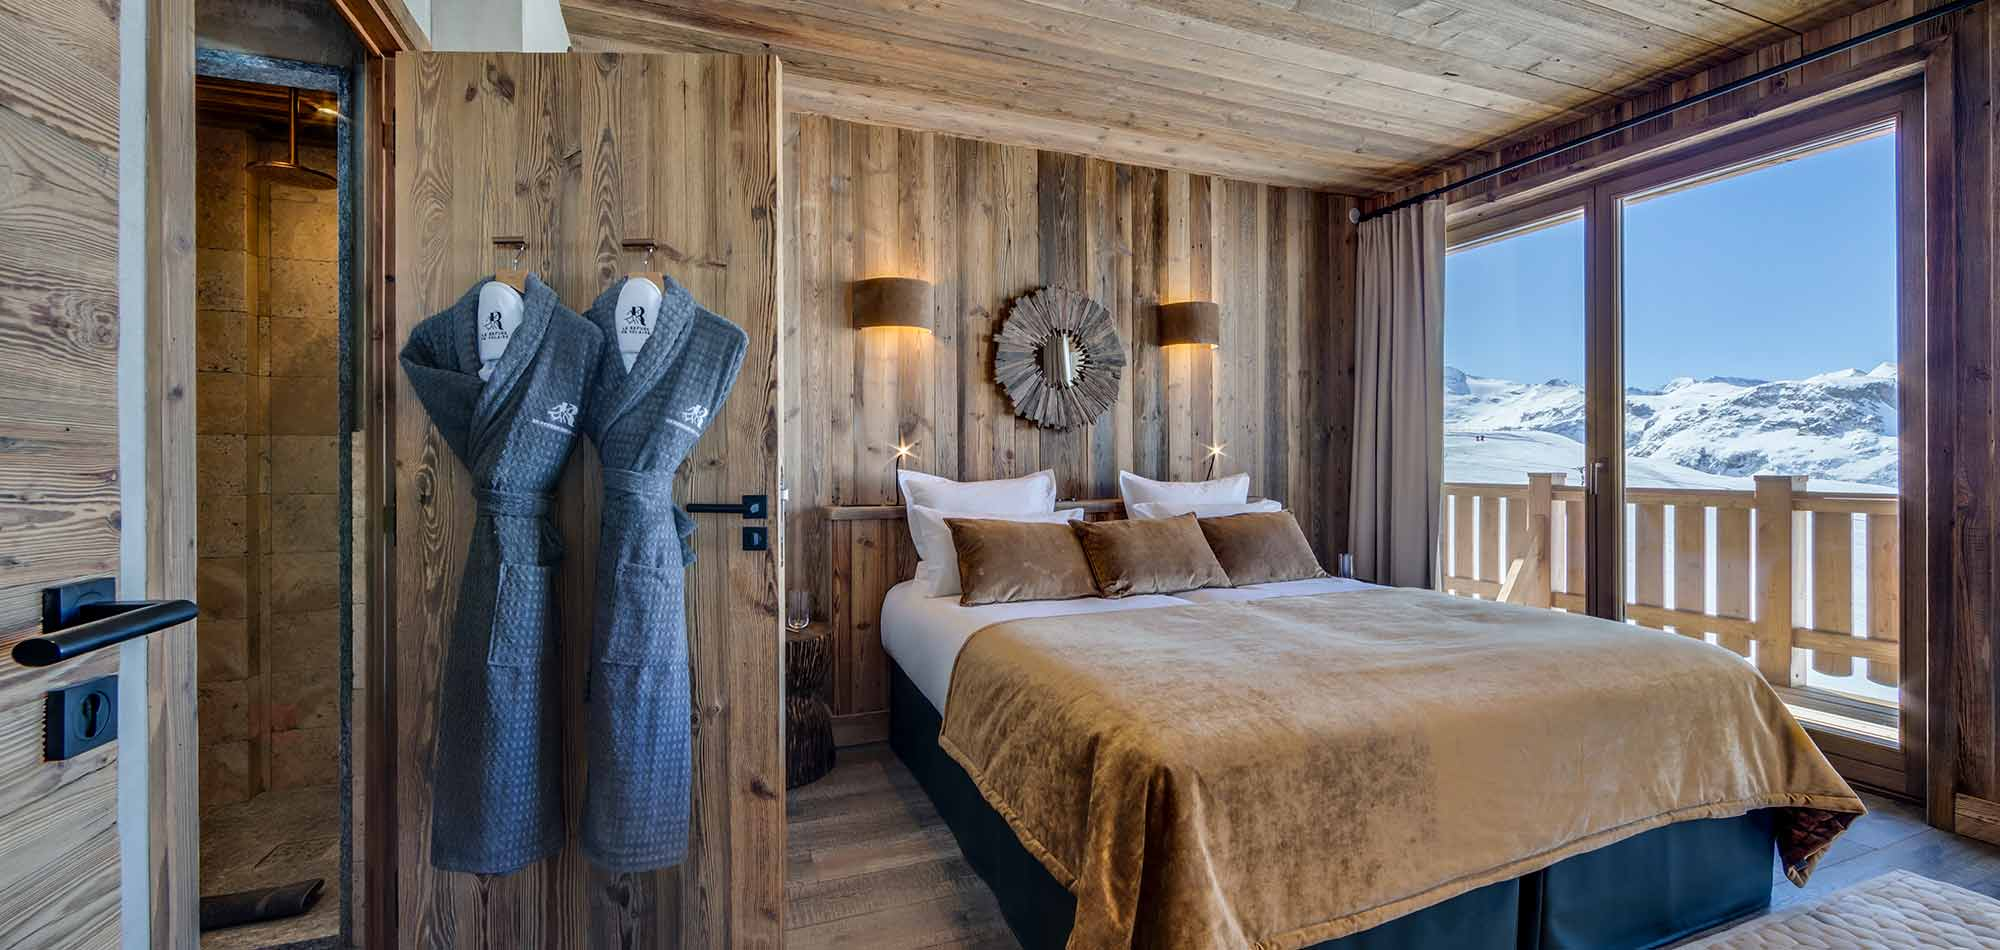 Ski Honeymoon in Val d'Isere